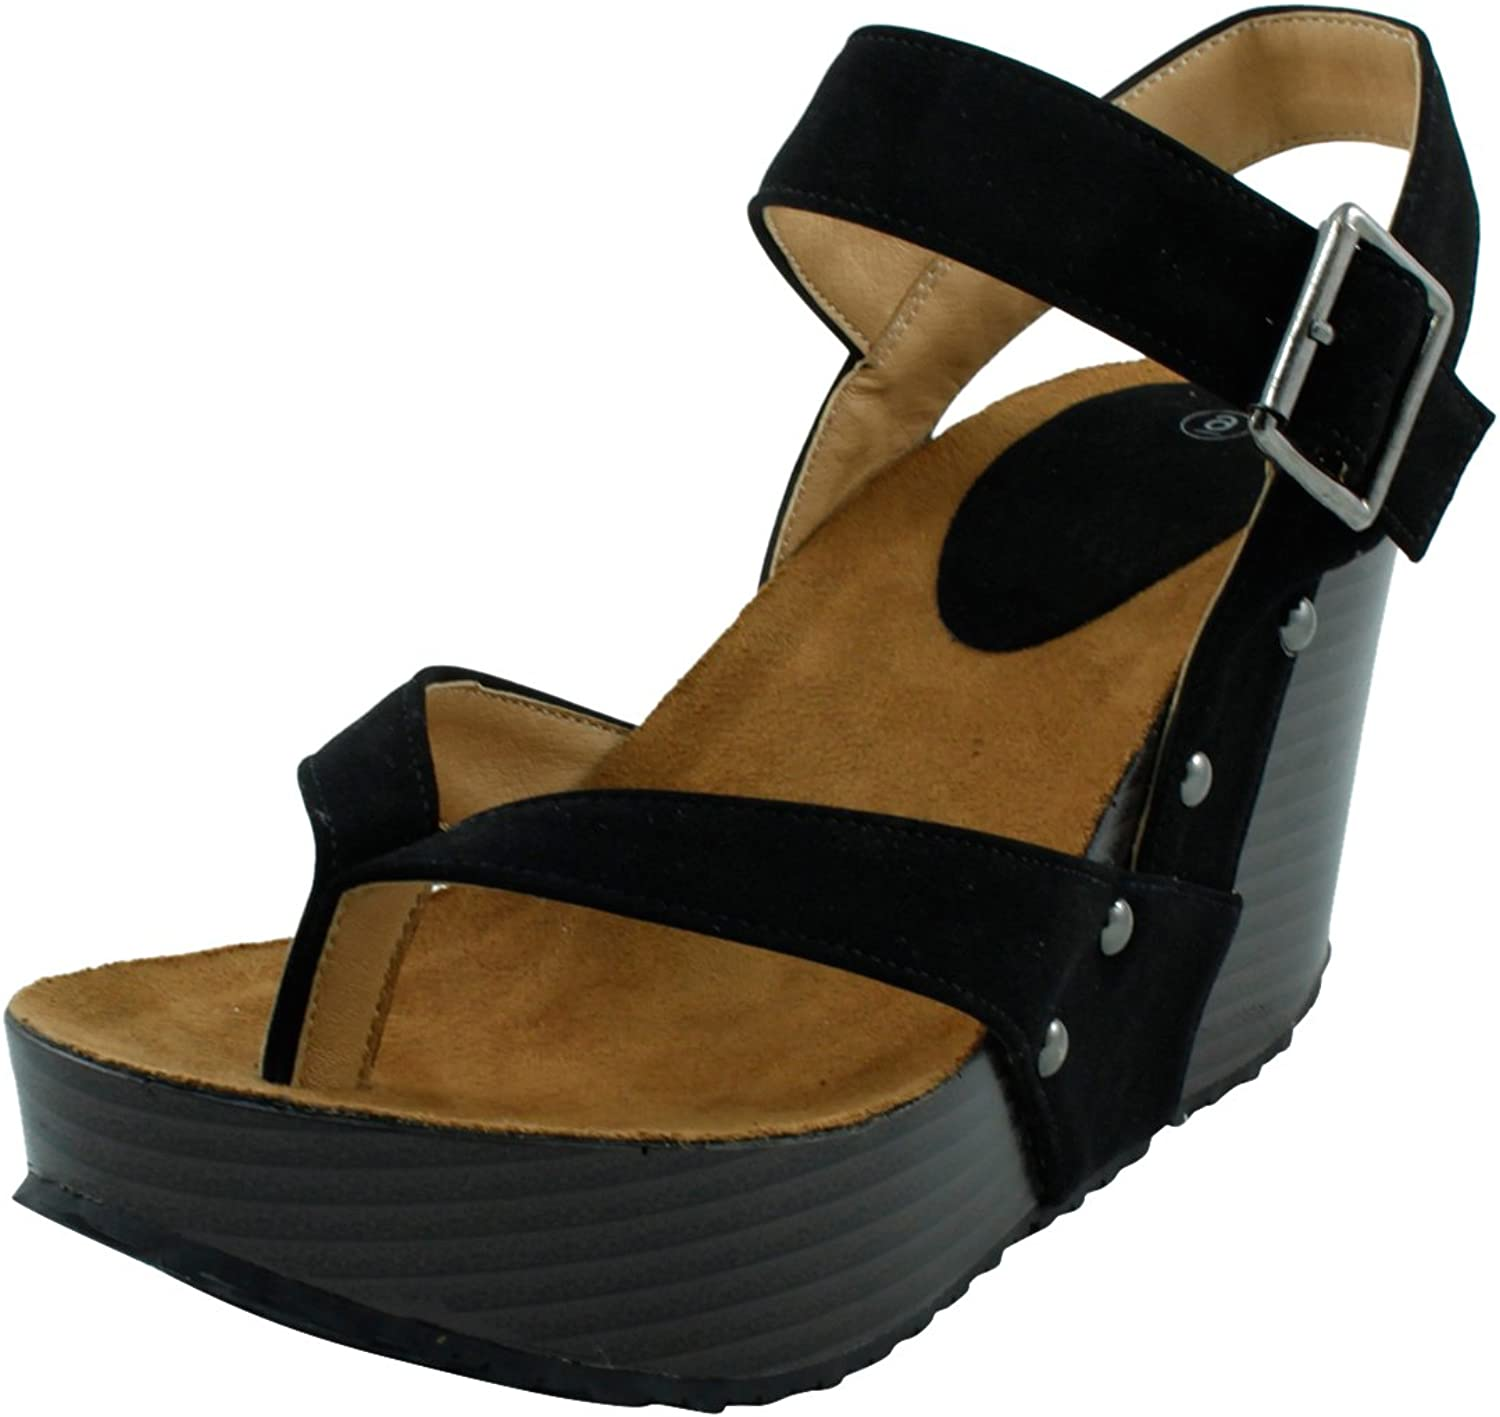 Cambridge Select Women's Studded Ankle Strappy Buckle Thong Platform Wedge Sandal